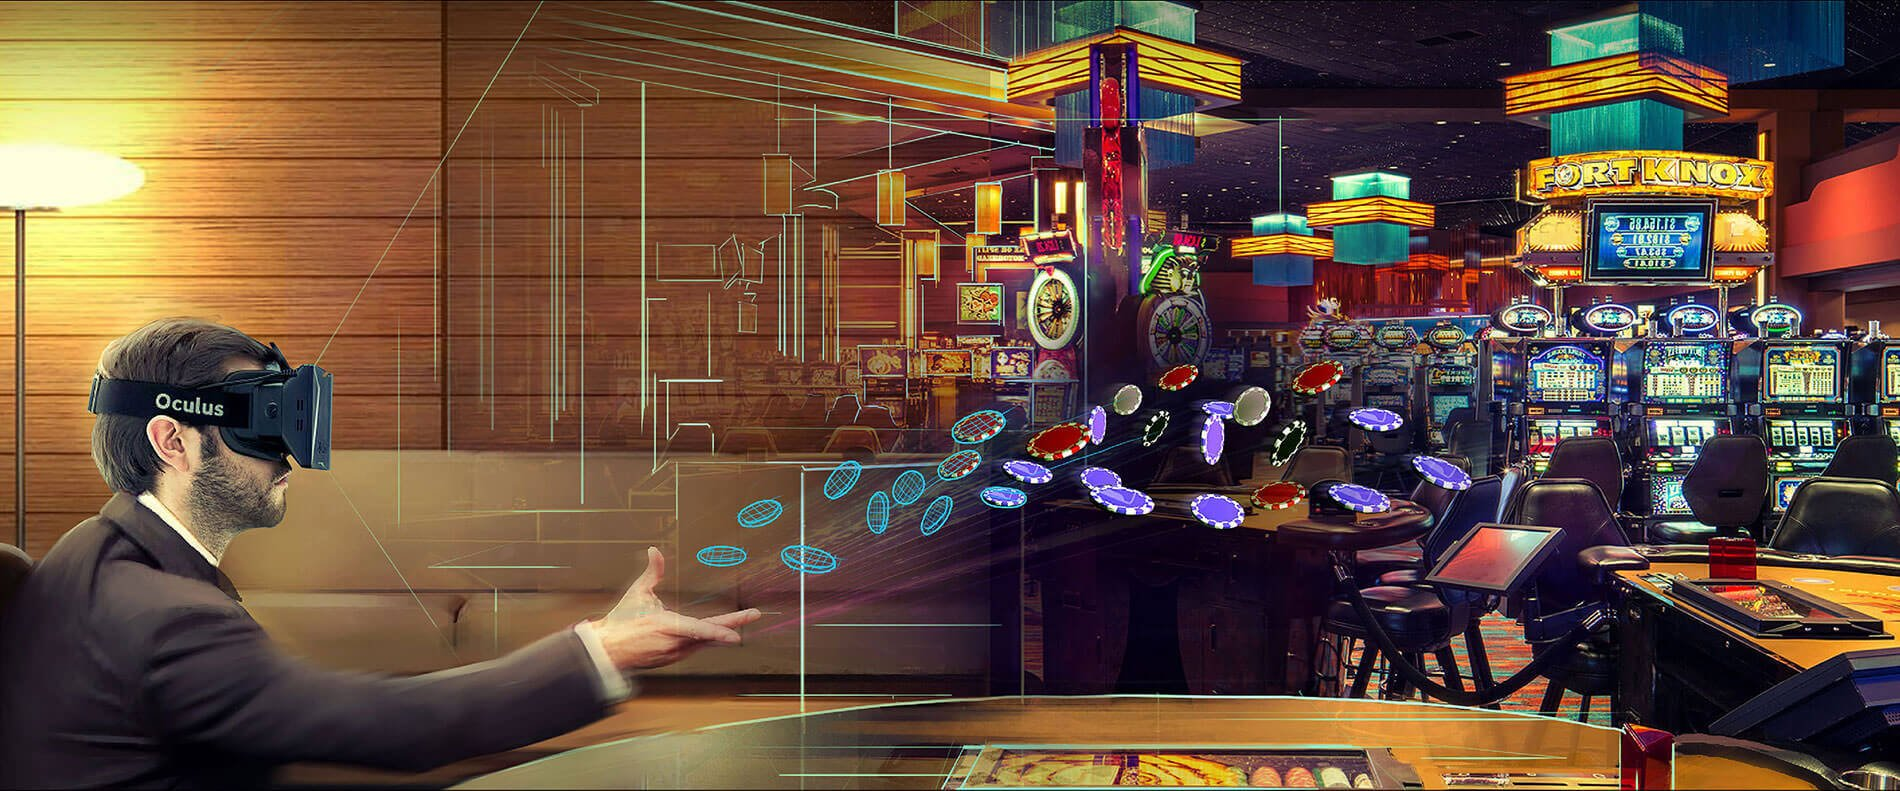 Casino free game online reality virtual at kewadin casino